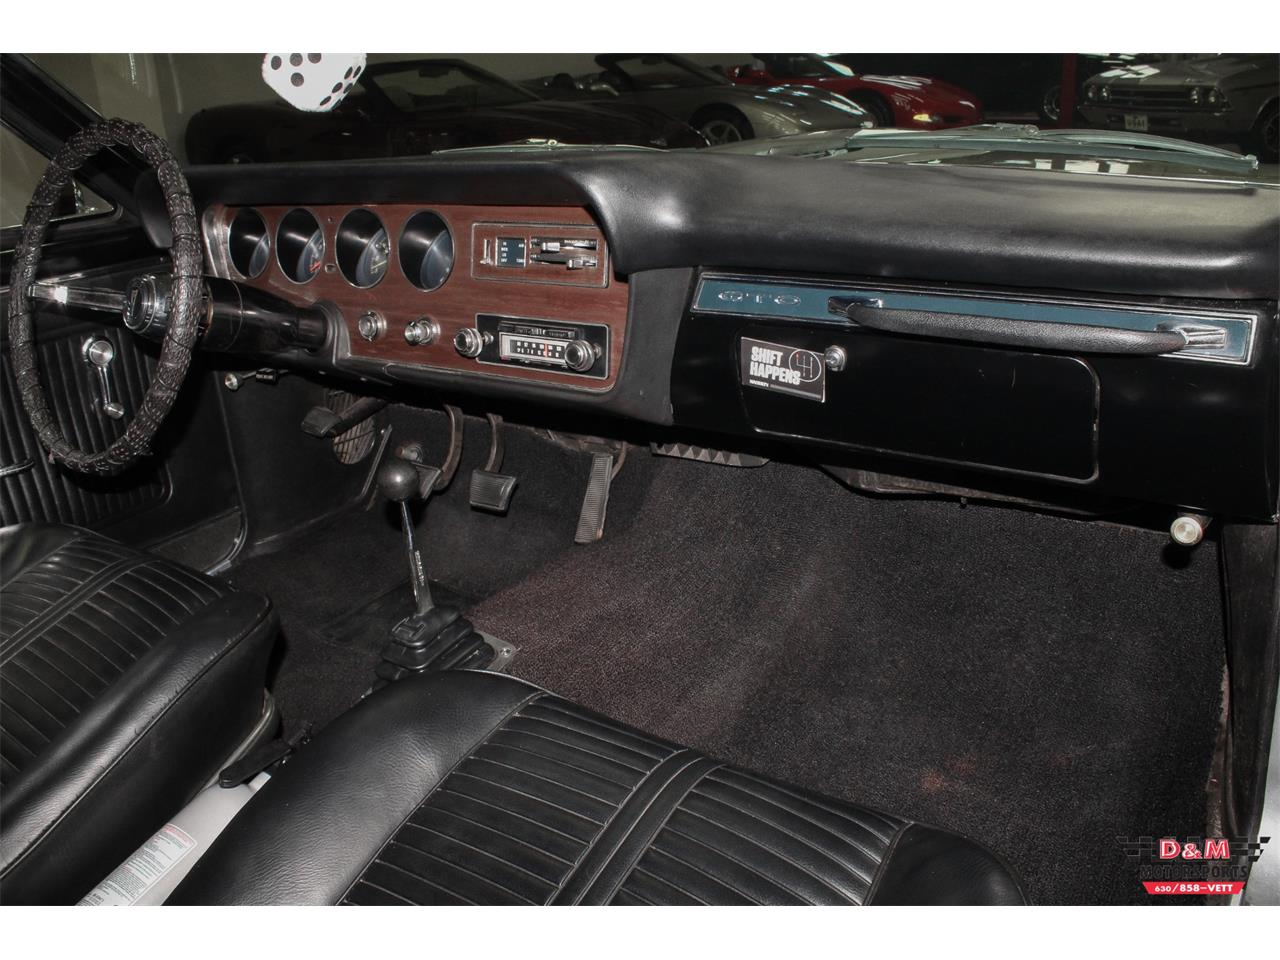 Large Picture of '66 Pontiac GTO - $39,995.00 Offered by D & M Motorsports - O7FS